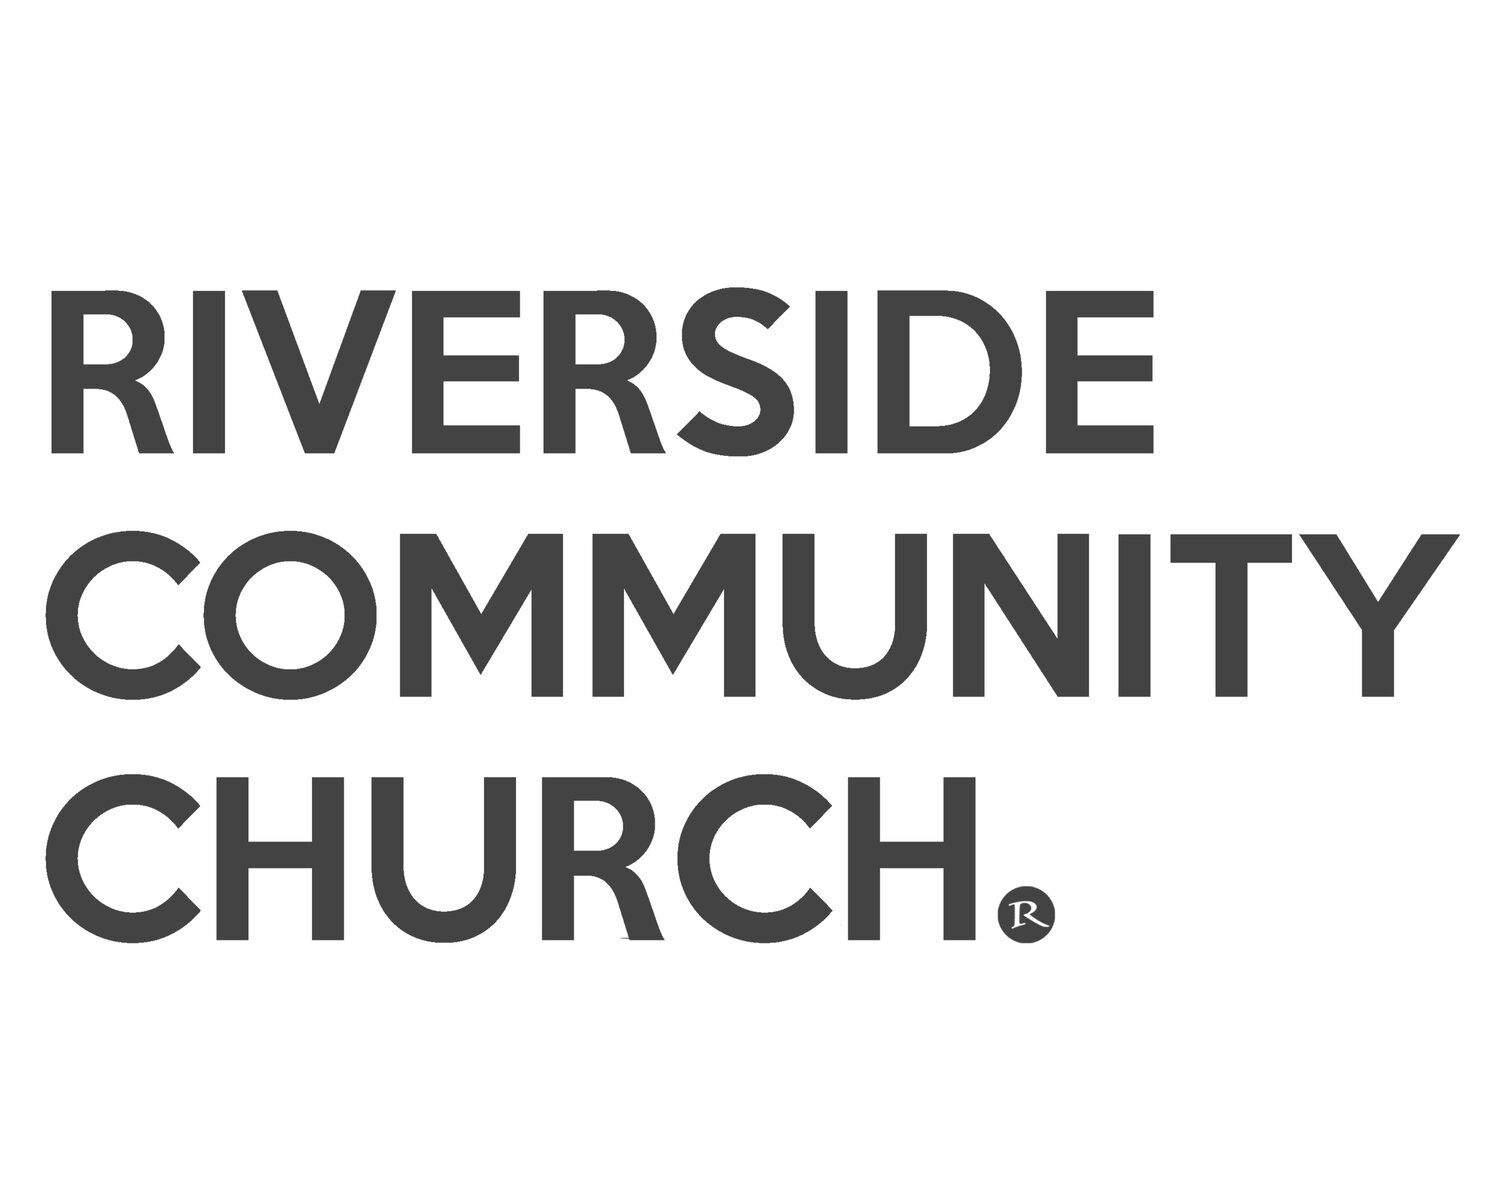 Riverside Community Church - Peoria, IL